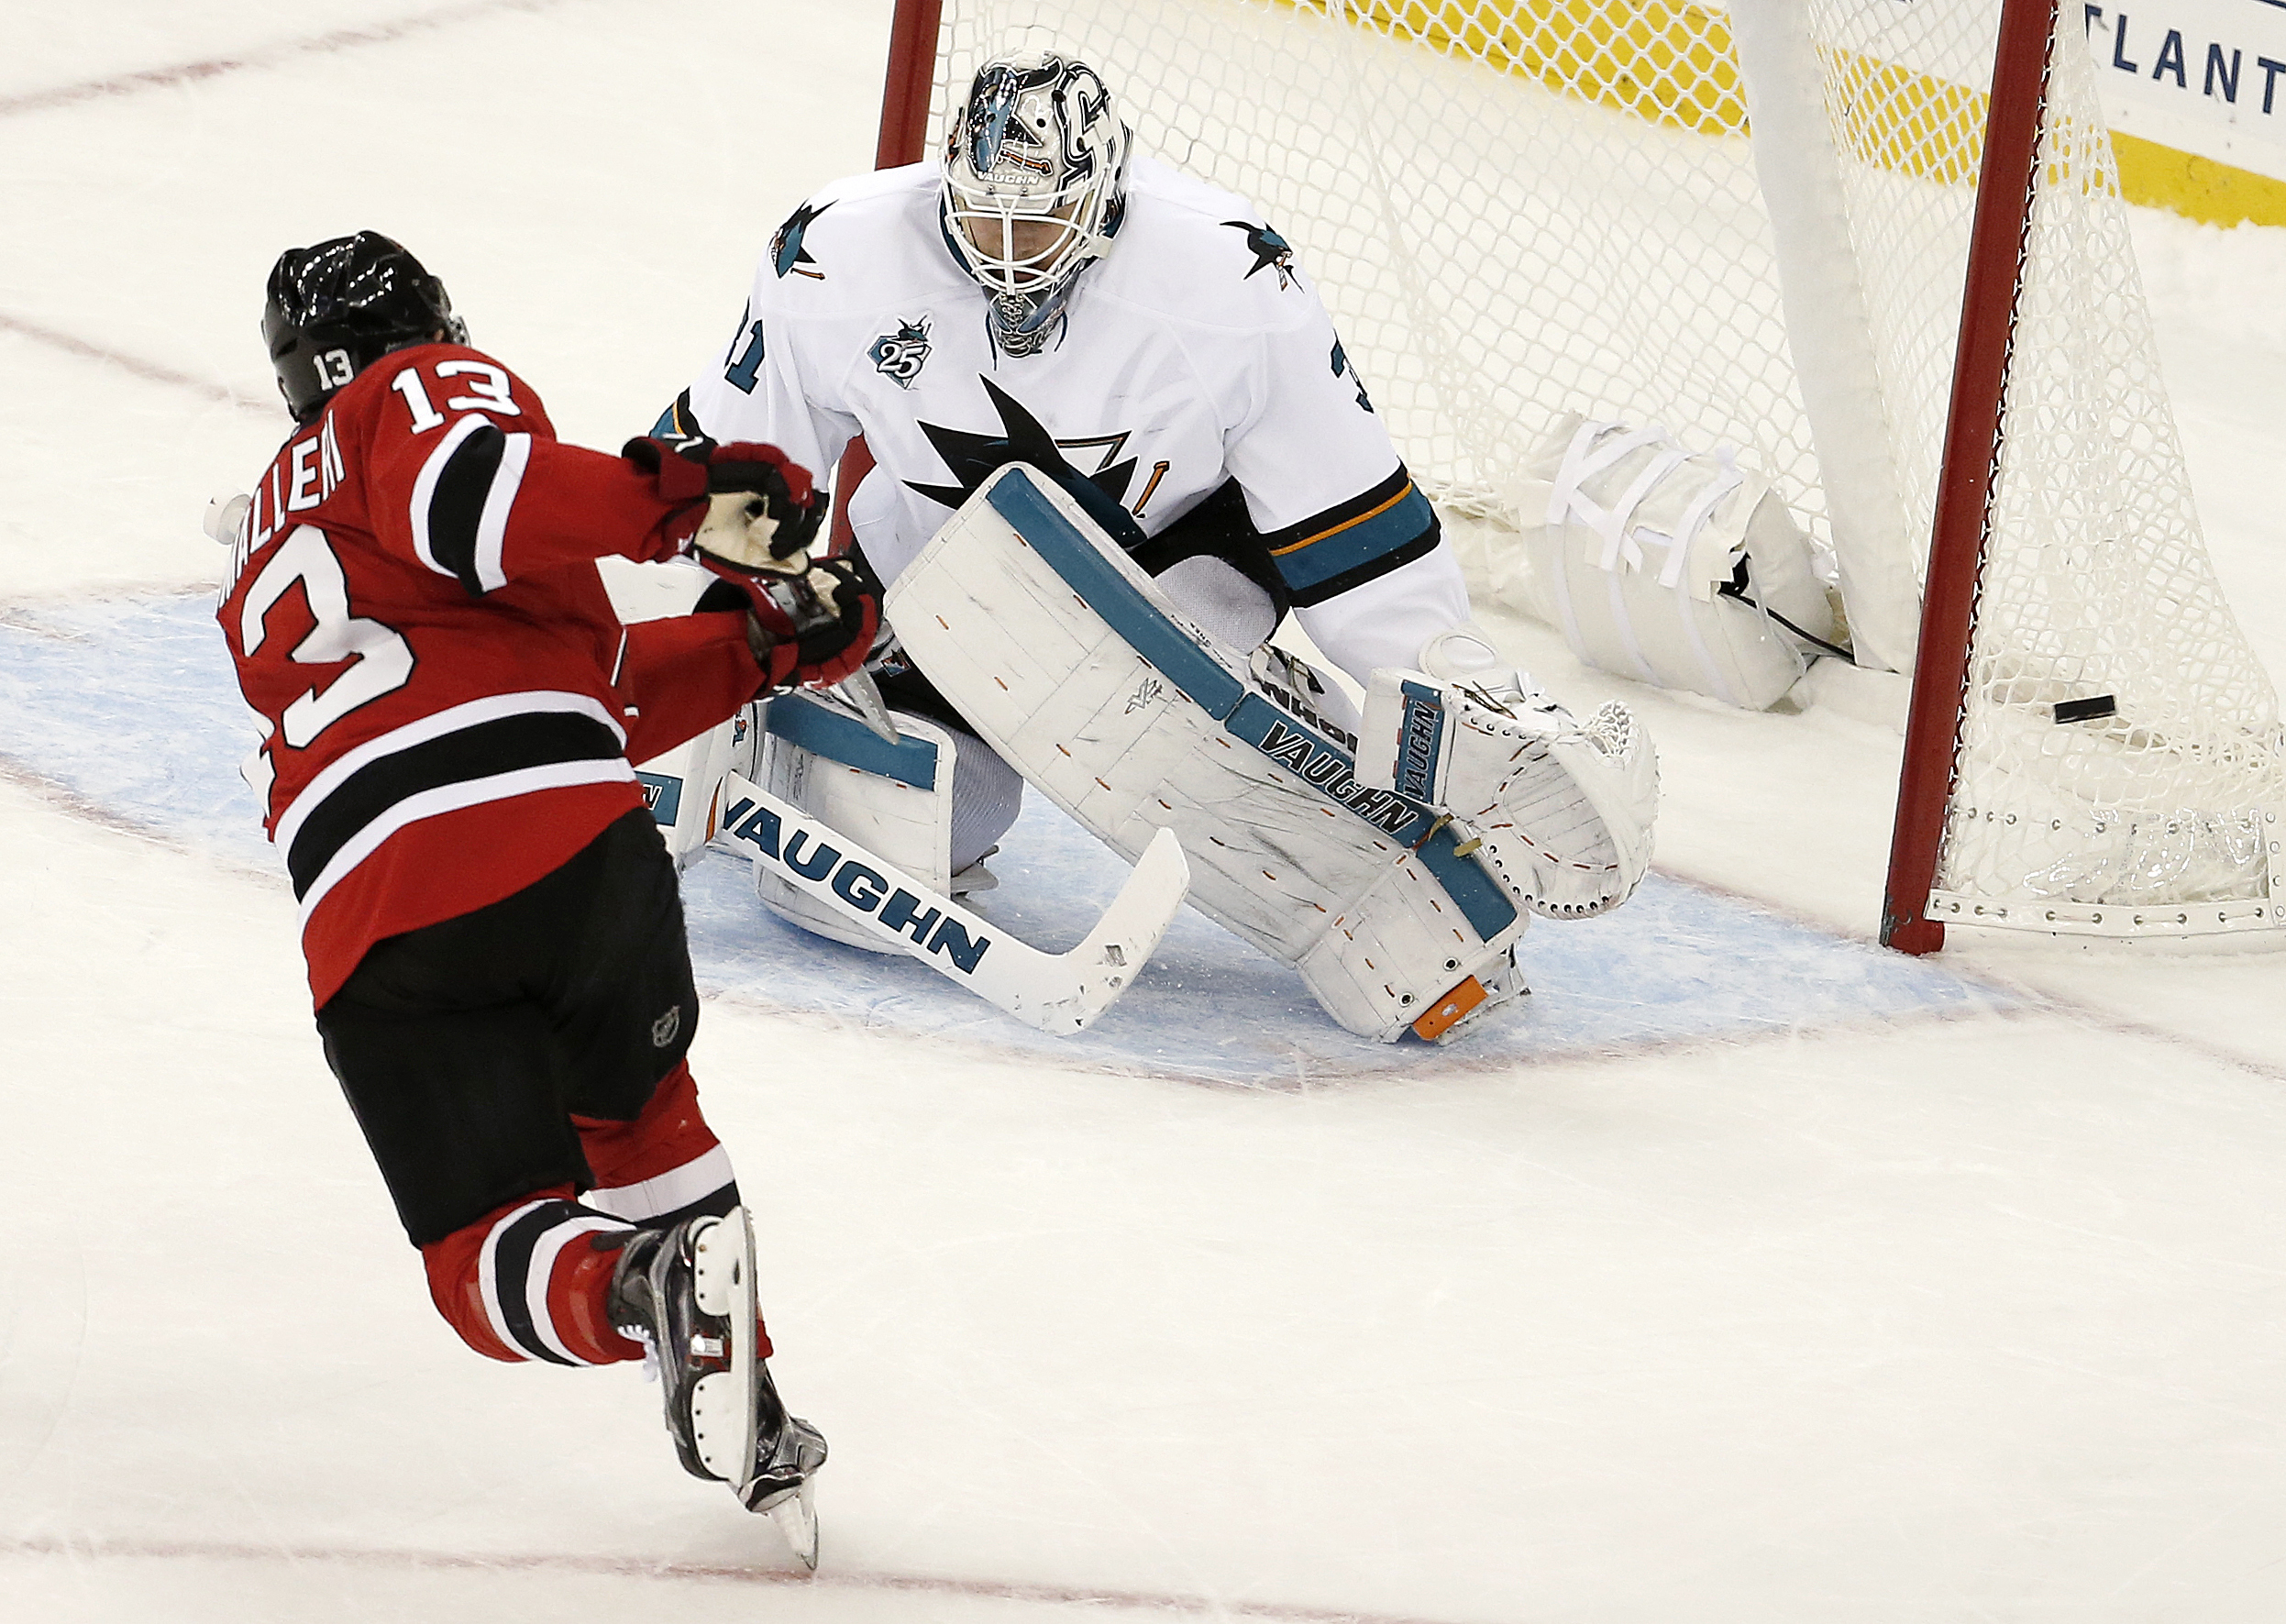 New Jersey Devils left wing Mike Cammalleri (13) misses a shootout shot against San Jose Sharks goalie Martin Jones (31) during an NHL hockey game, Friday, Oct. 16, 2015, in Newark, N.J. The Sharks won 2-1 in a shootout. (AP Photo/Julio Cortez)